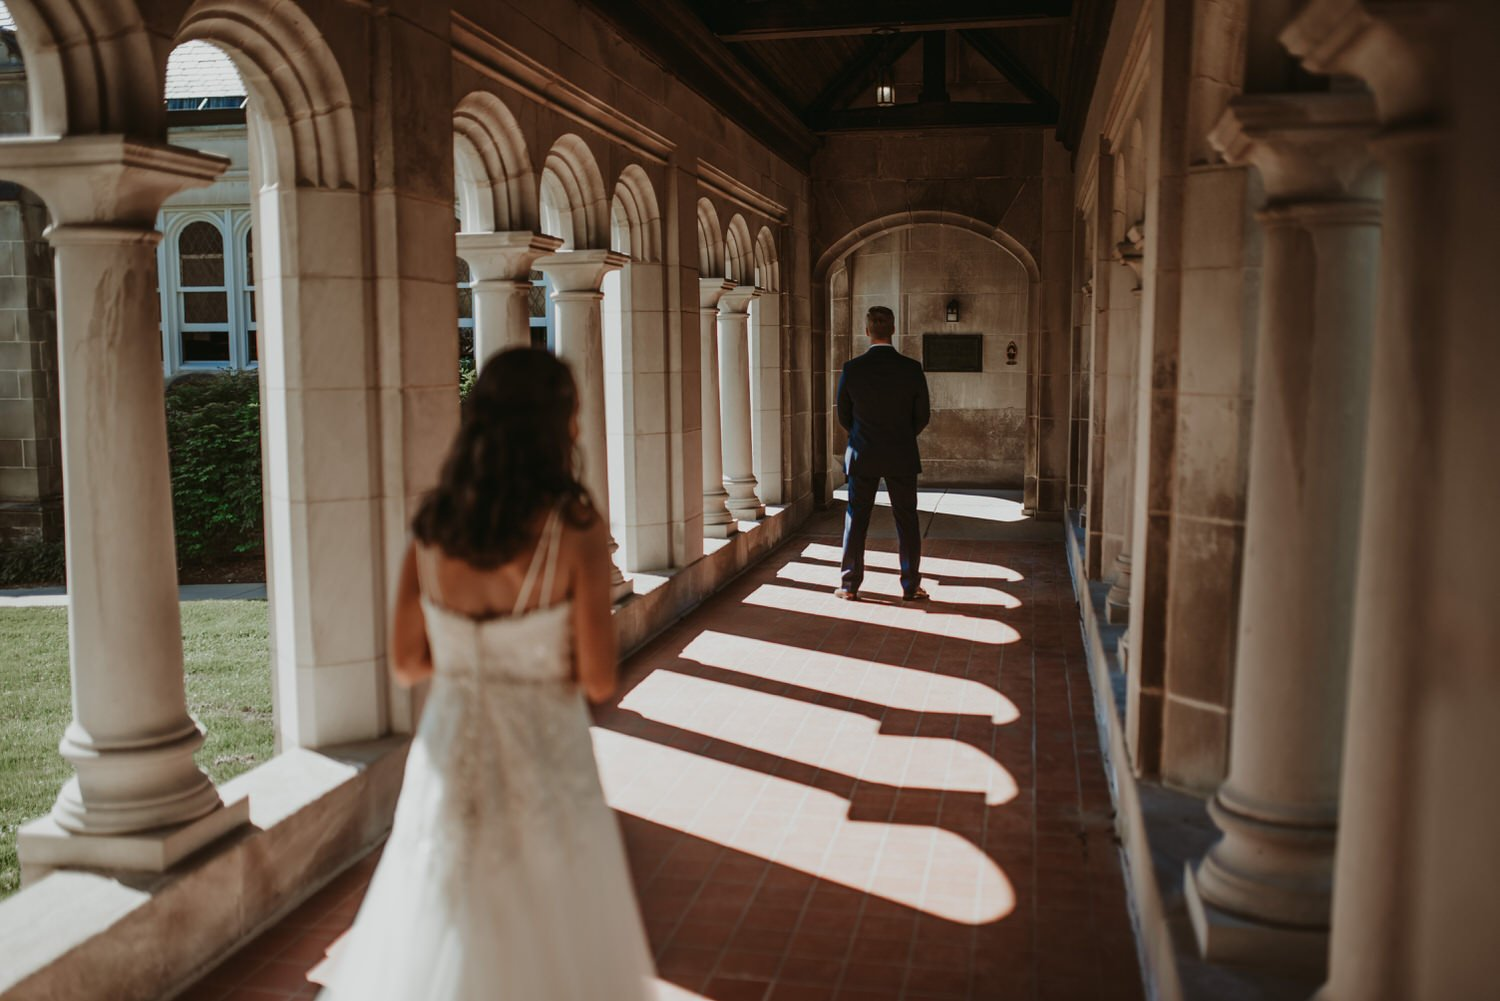 The Adamkovi Chicago Wedding Photography, Creative photography, Dark and moody, Documentary, First look, lily reid holt memorial chapel